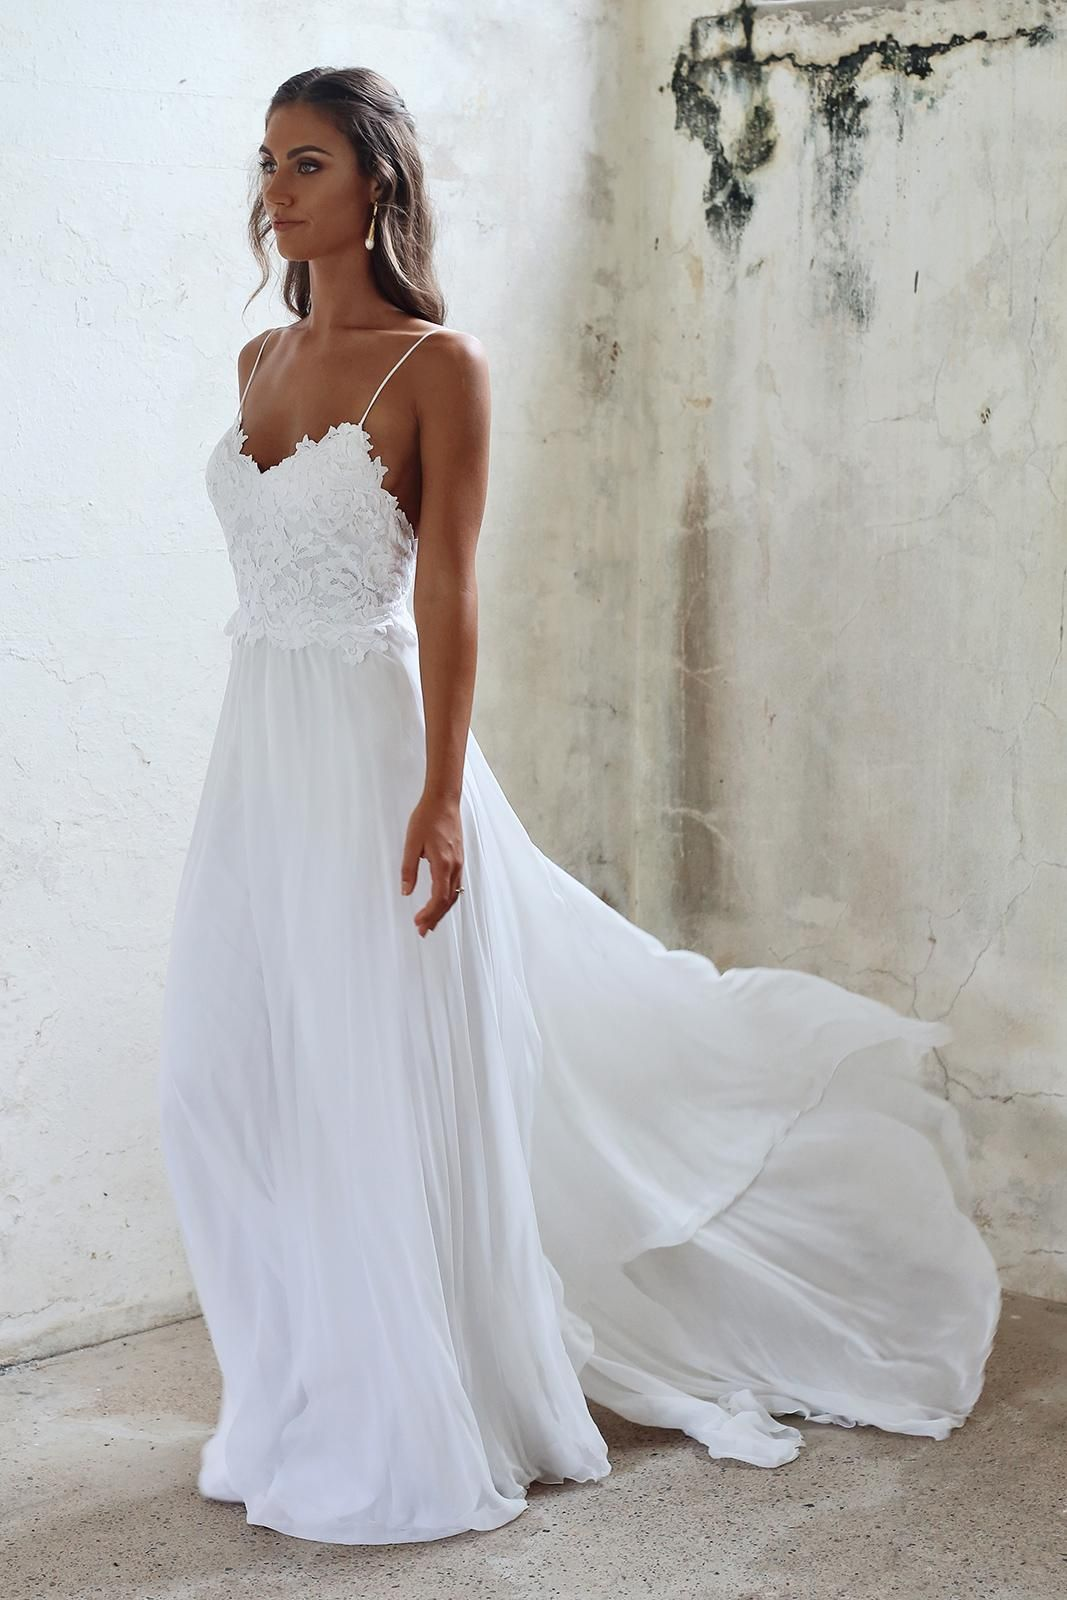 Tara in wedding ideas pinterest wedding dresses wedding